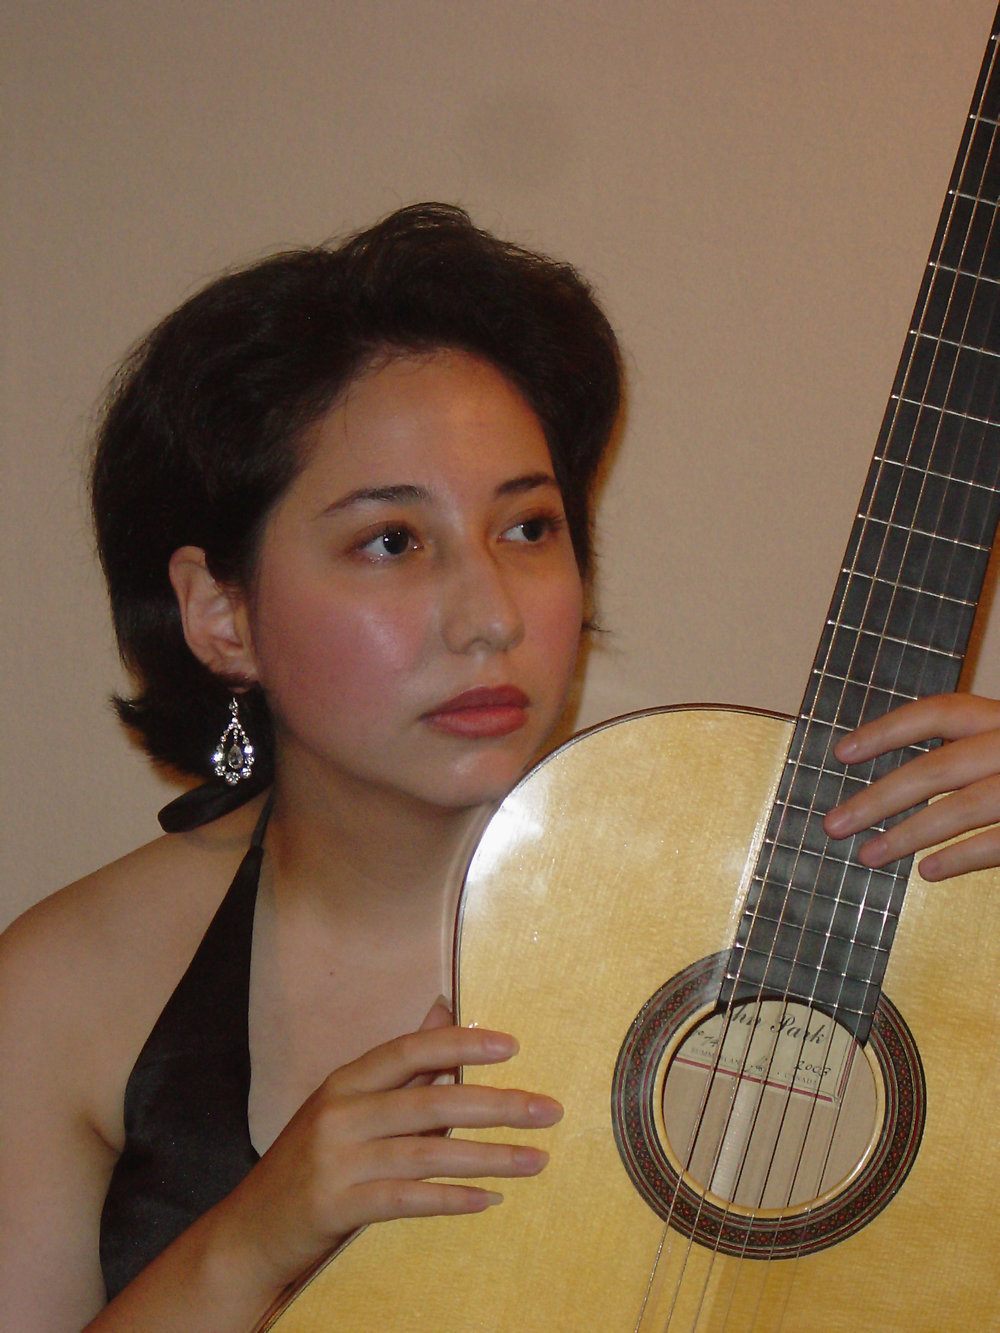 duo_tenebroso_kristen_waligora_classical_guitar_young_looking.jpg